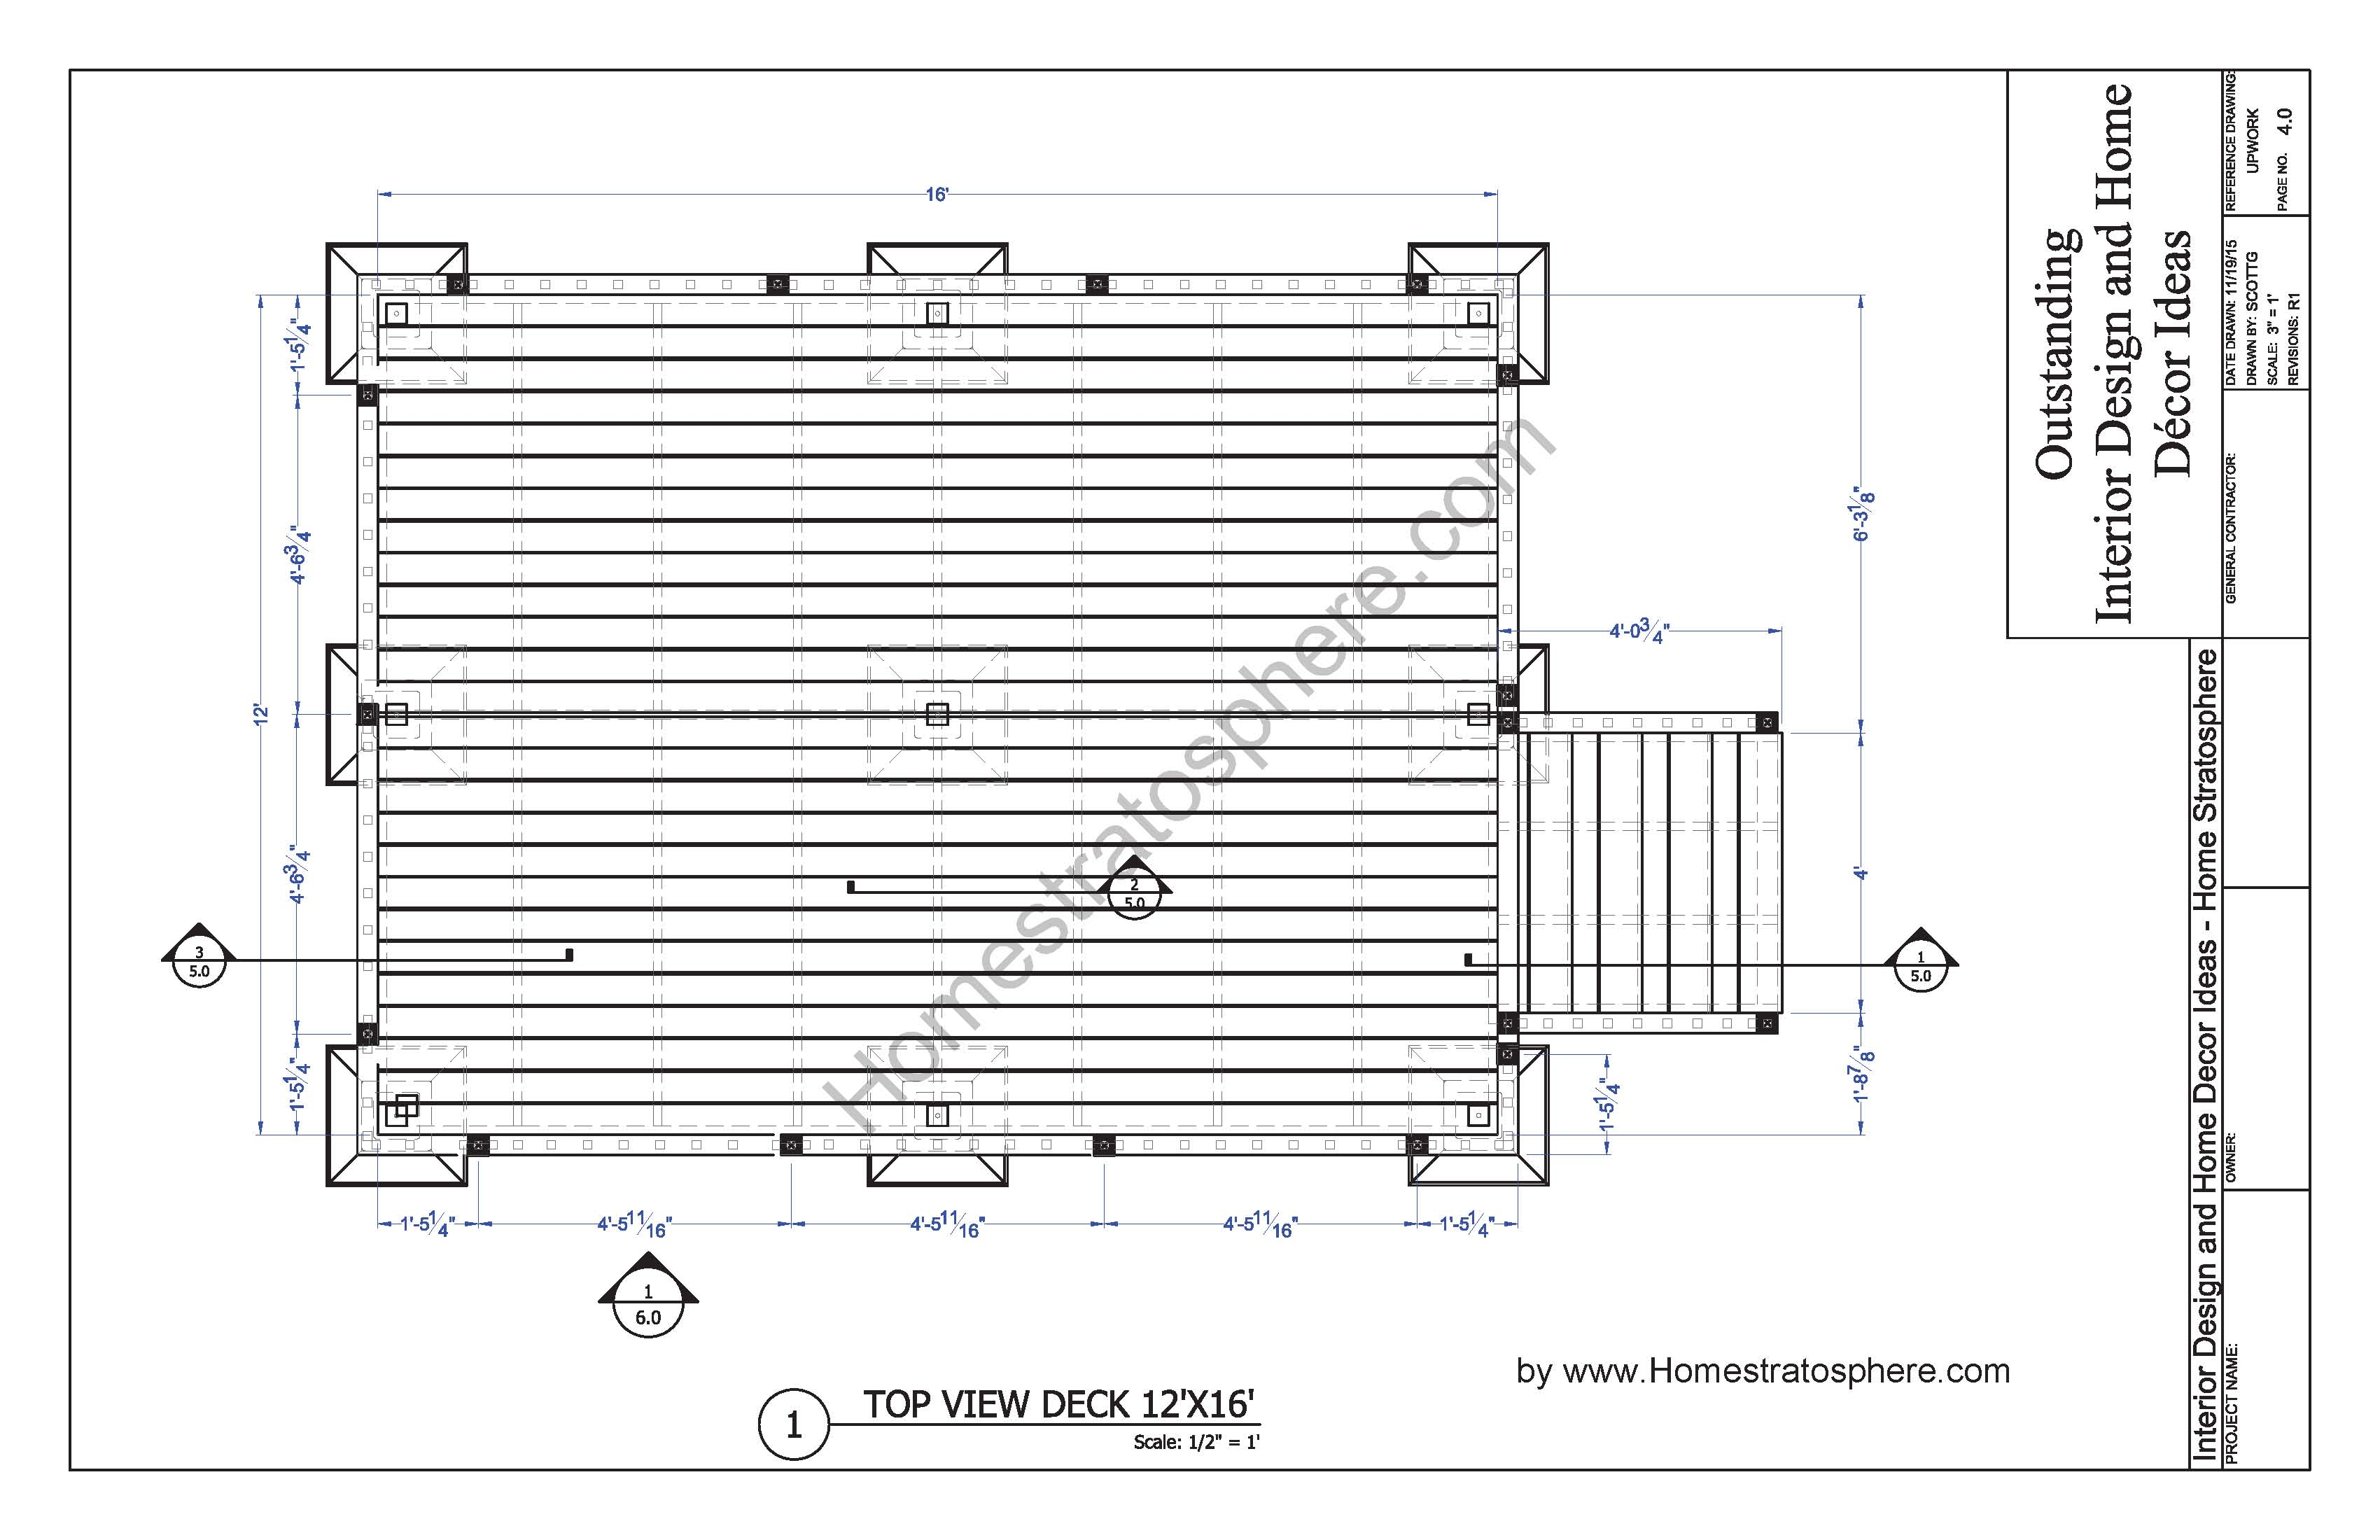 Free 12 x 16 deck plan blueprint with pdf document download 12x16 deck with stairs planpage04 baanklon Images